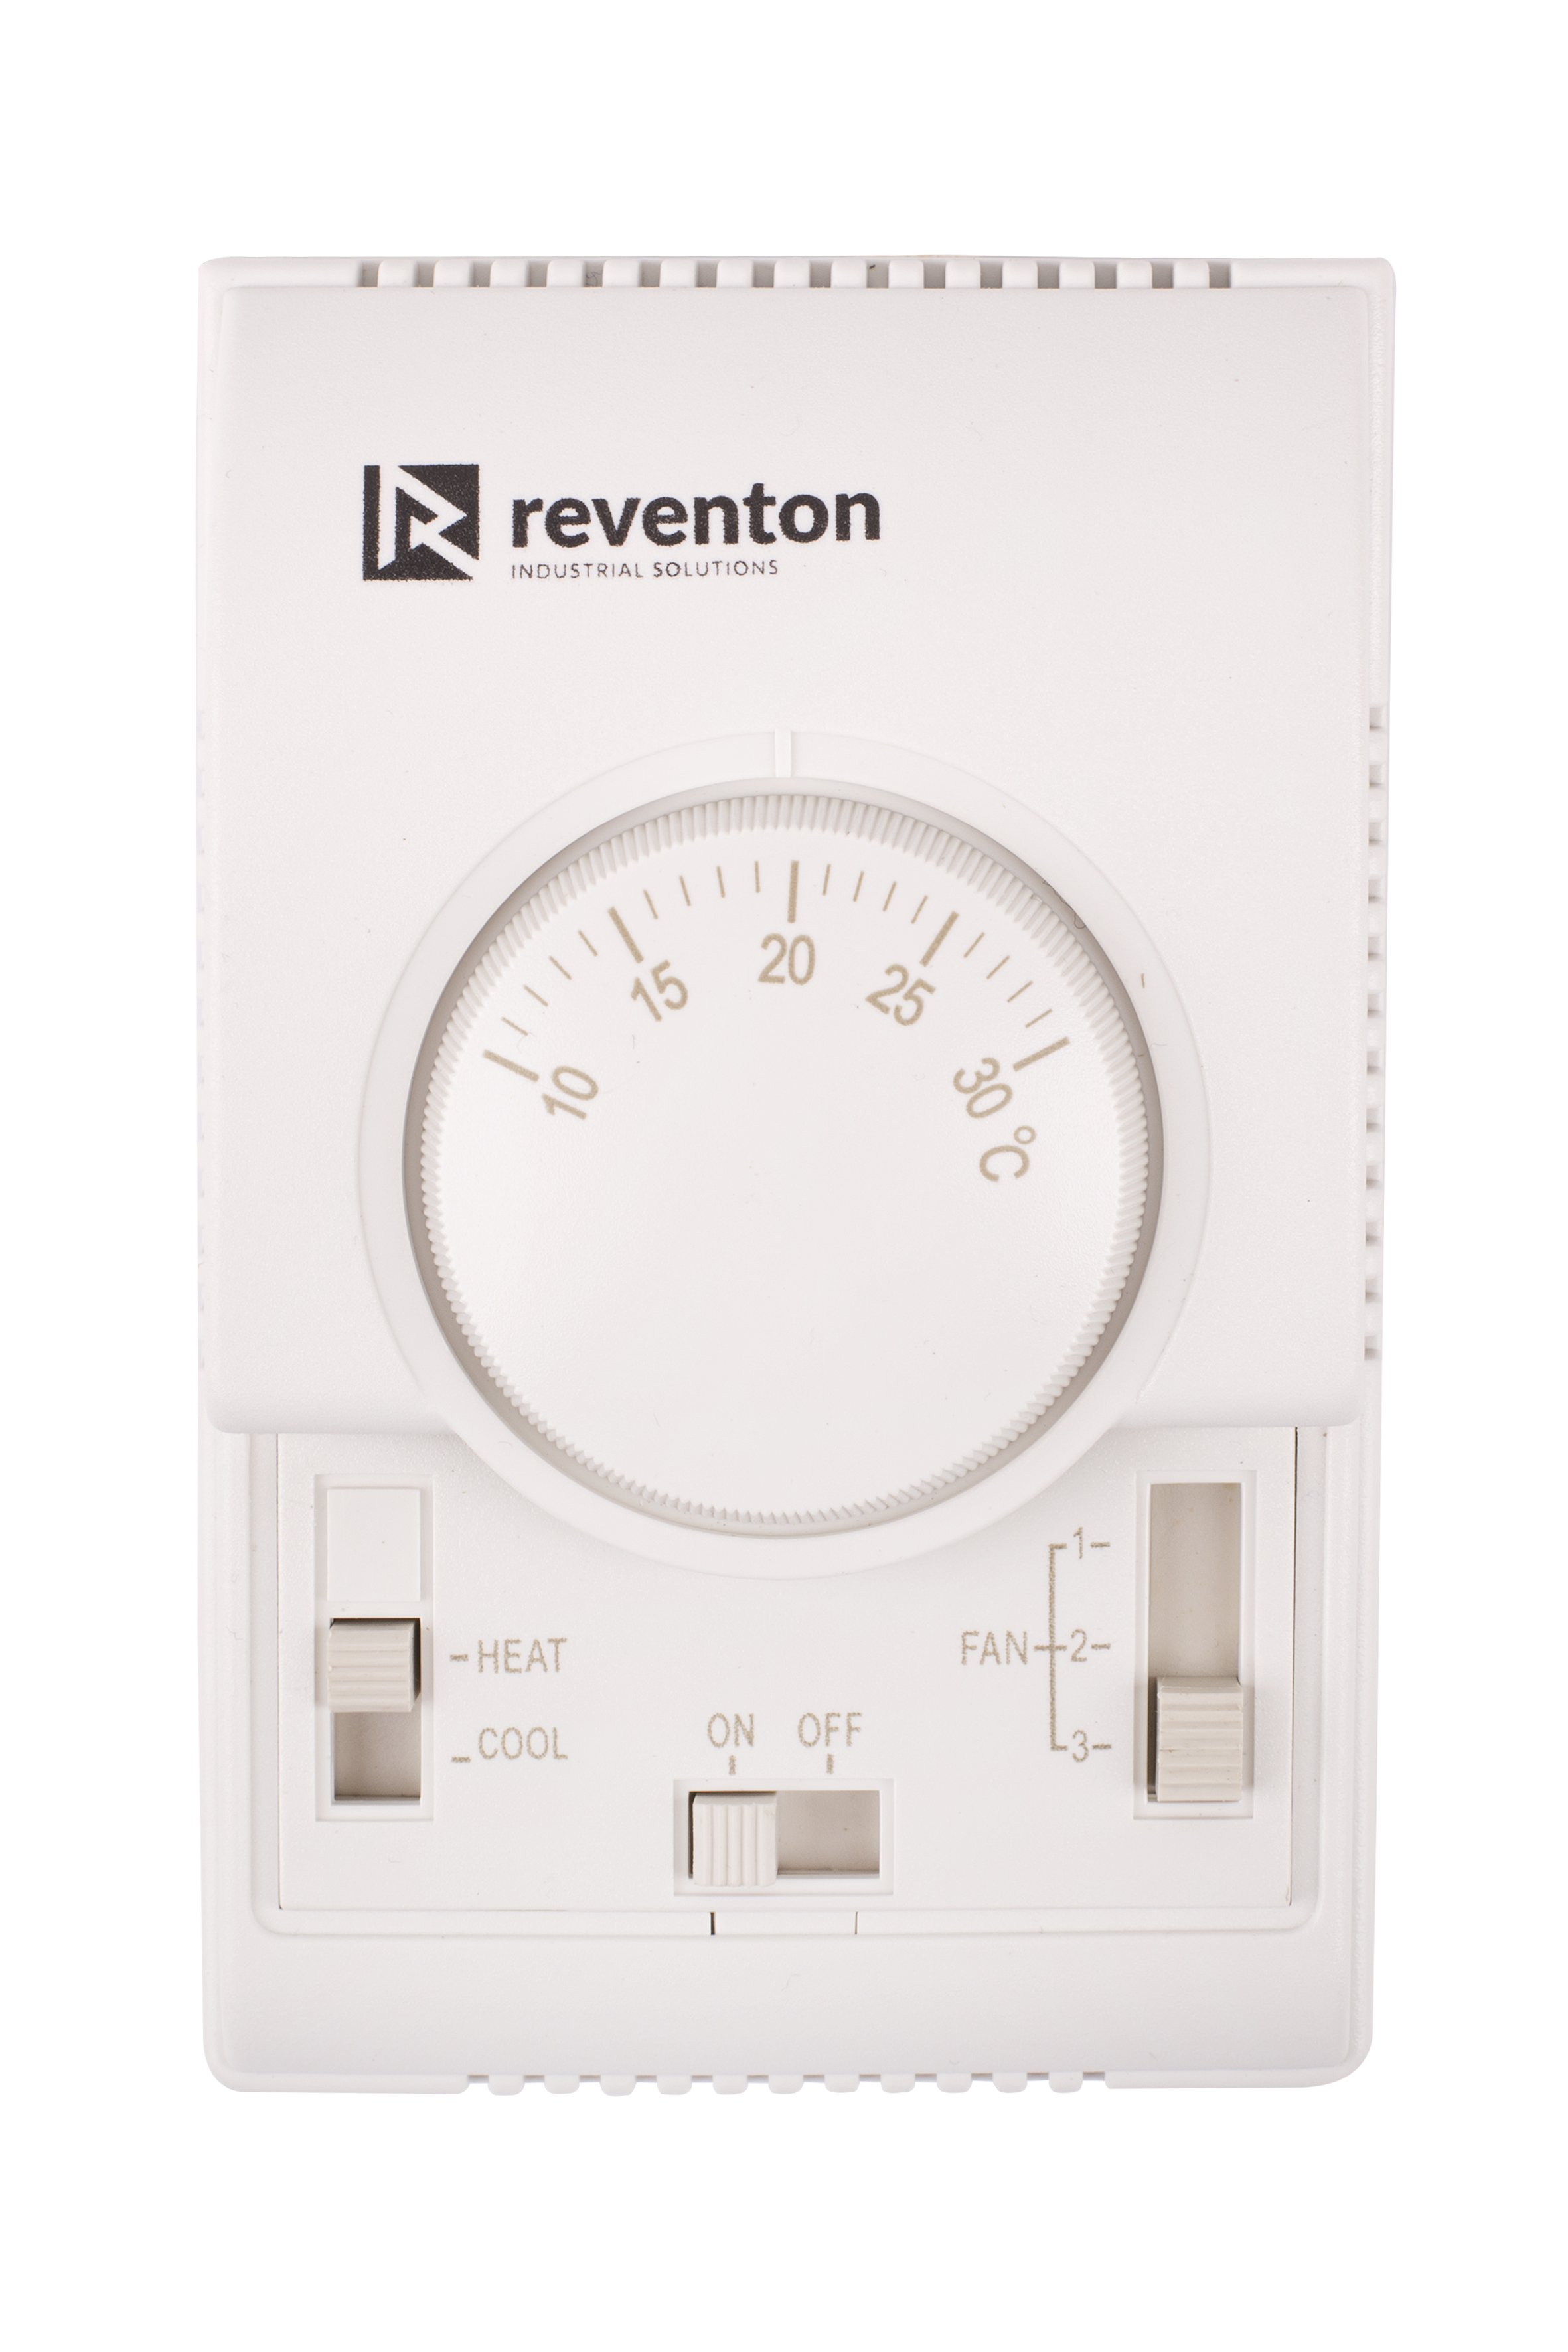 Accessories Reventon Temperature Controled Fan 3 Stage Adjustment Electric Valve And Thermostat Controlled Heat Cool Switch On Off Range 10c30 C Control Accuracy 1